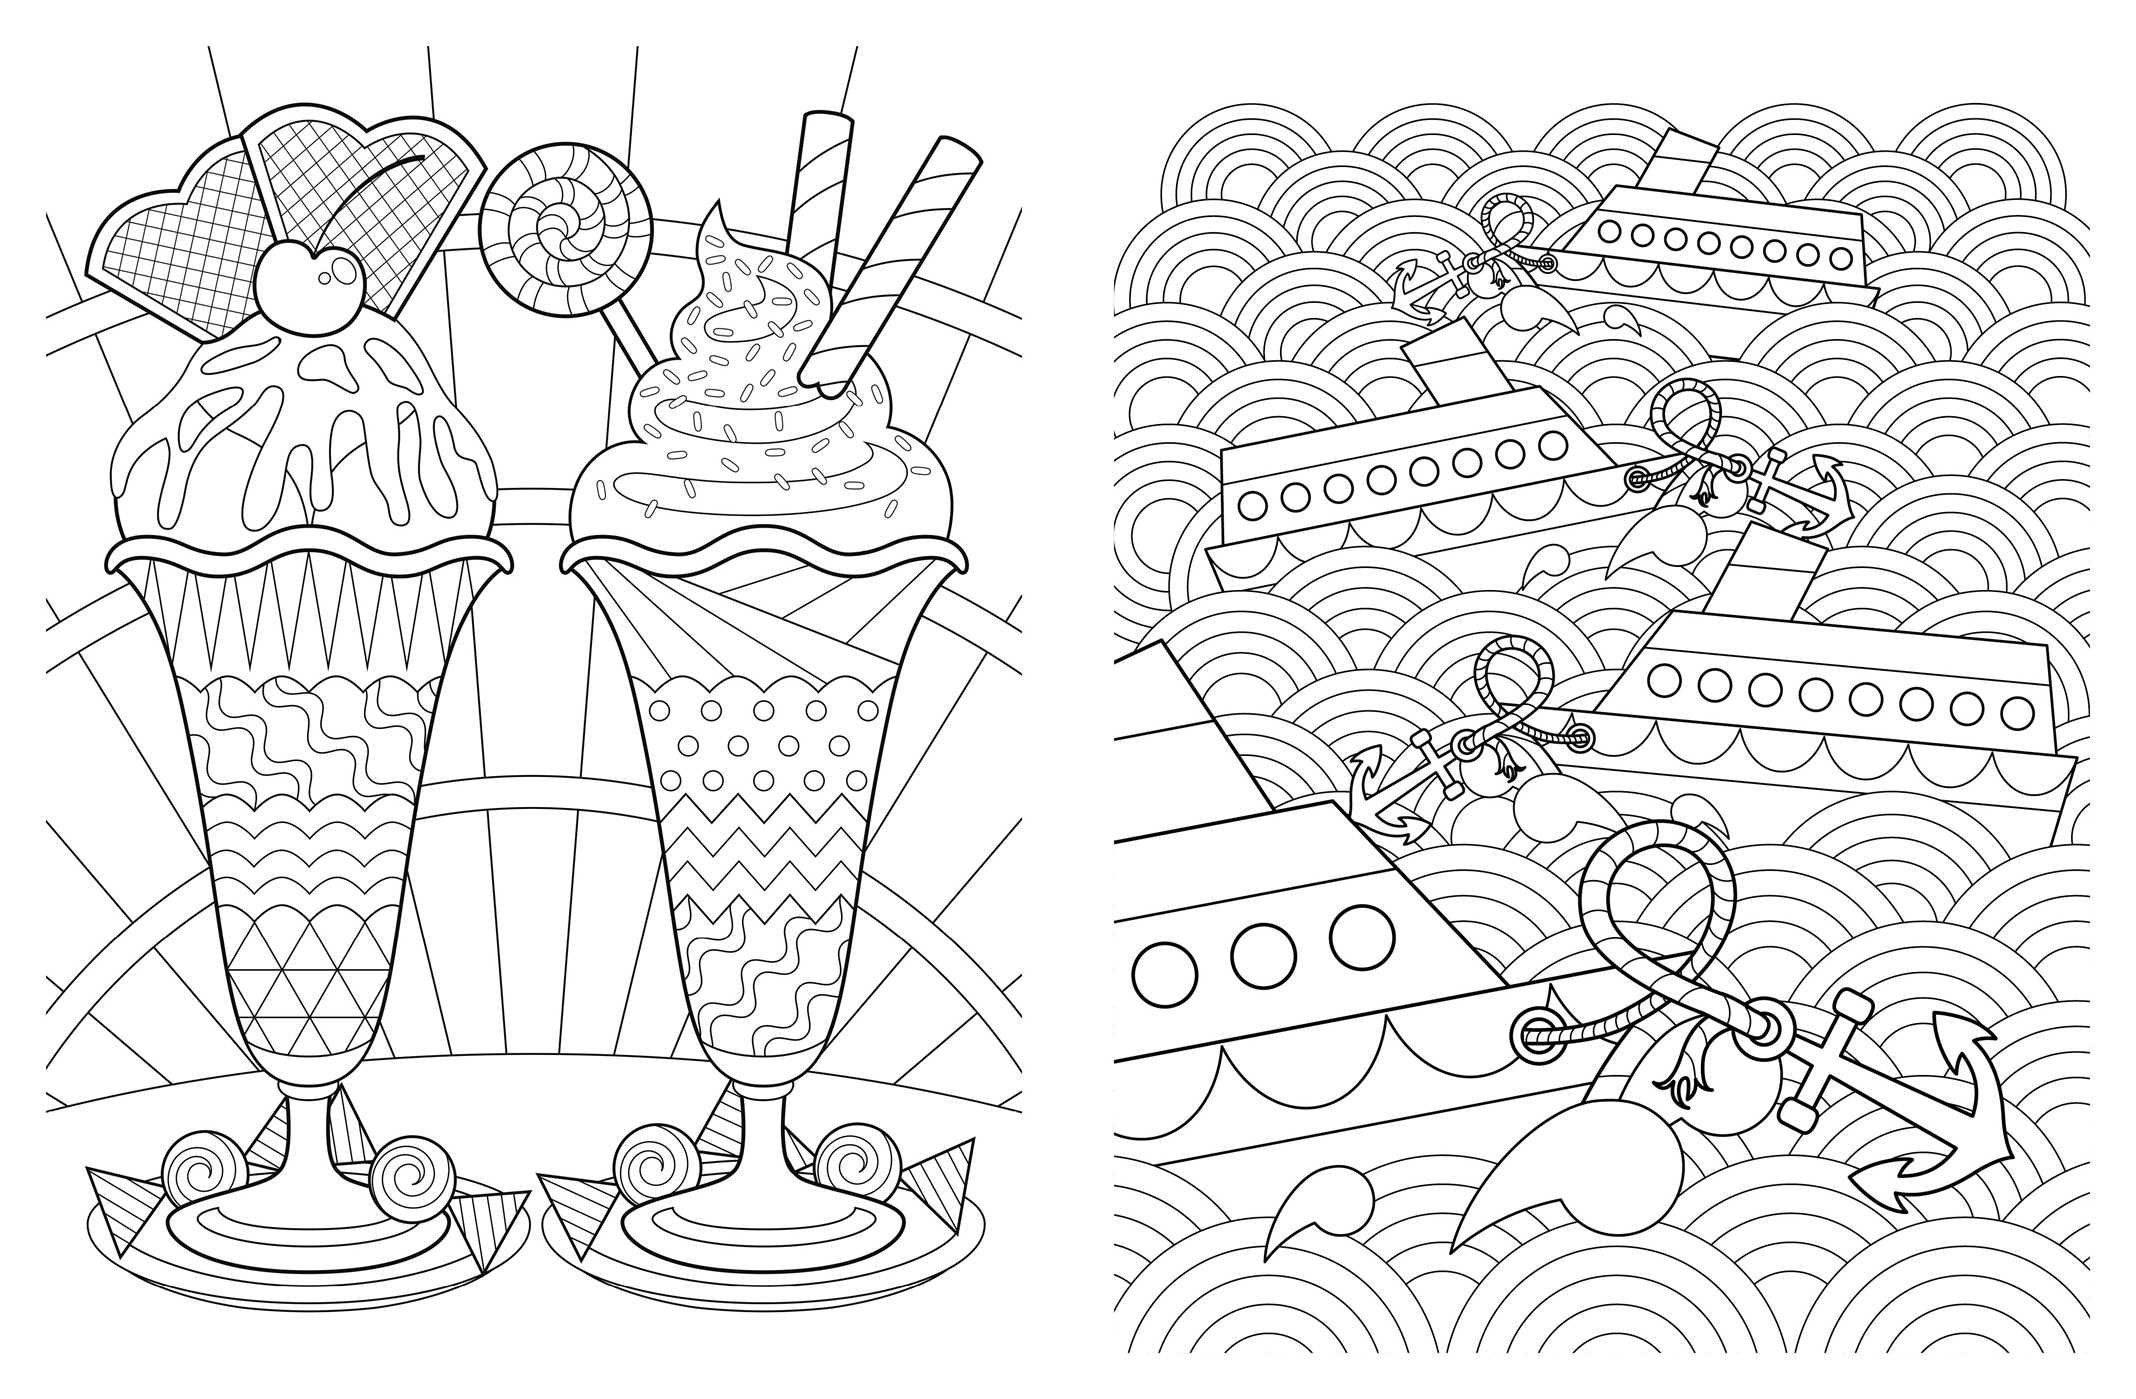 amazon com posh coloring book artful designs for fun